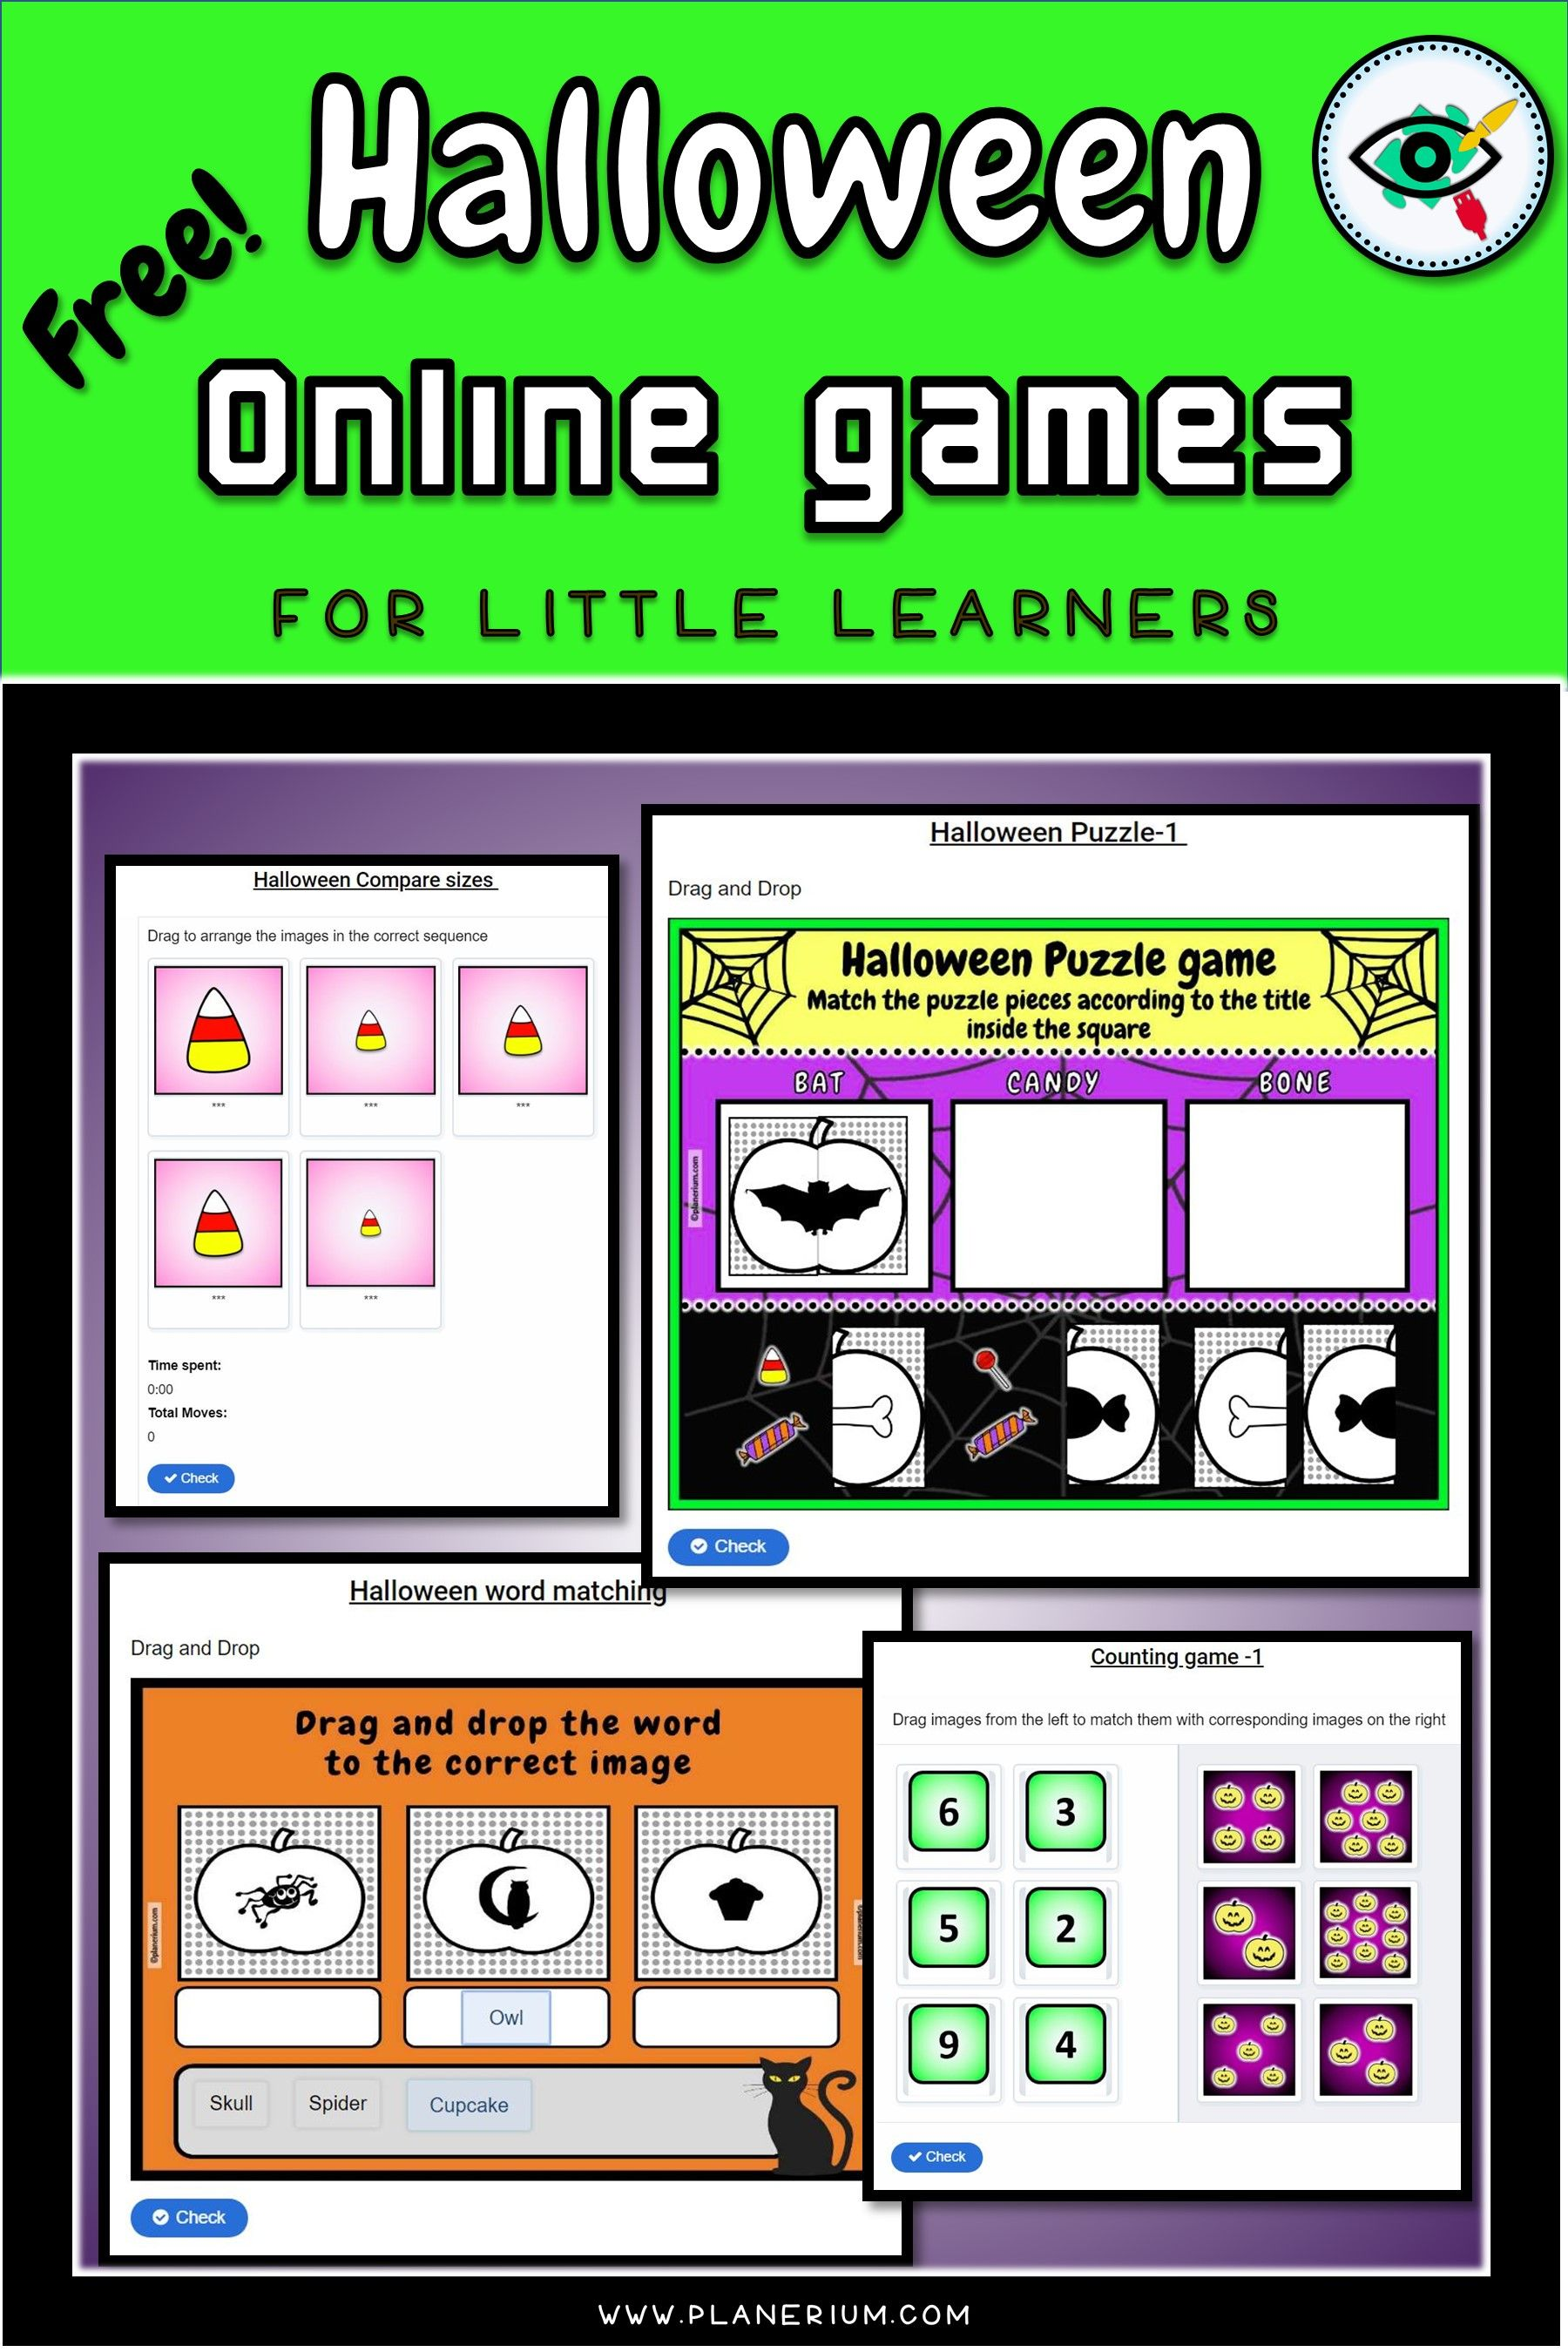 Free Fun Educational Halloween Online Games For Little Learners